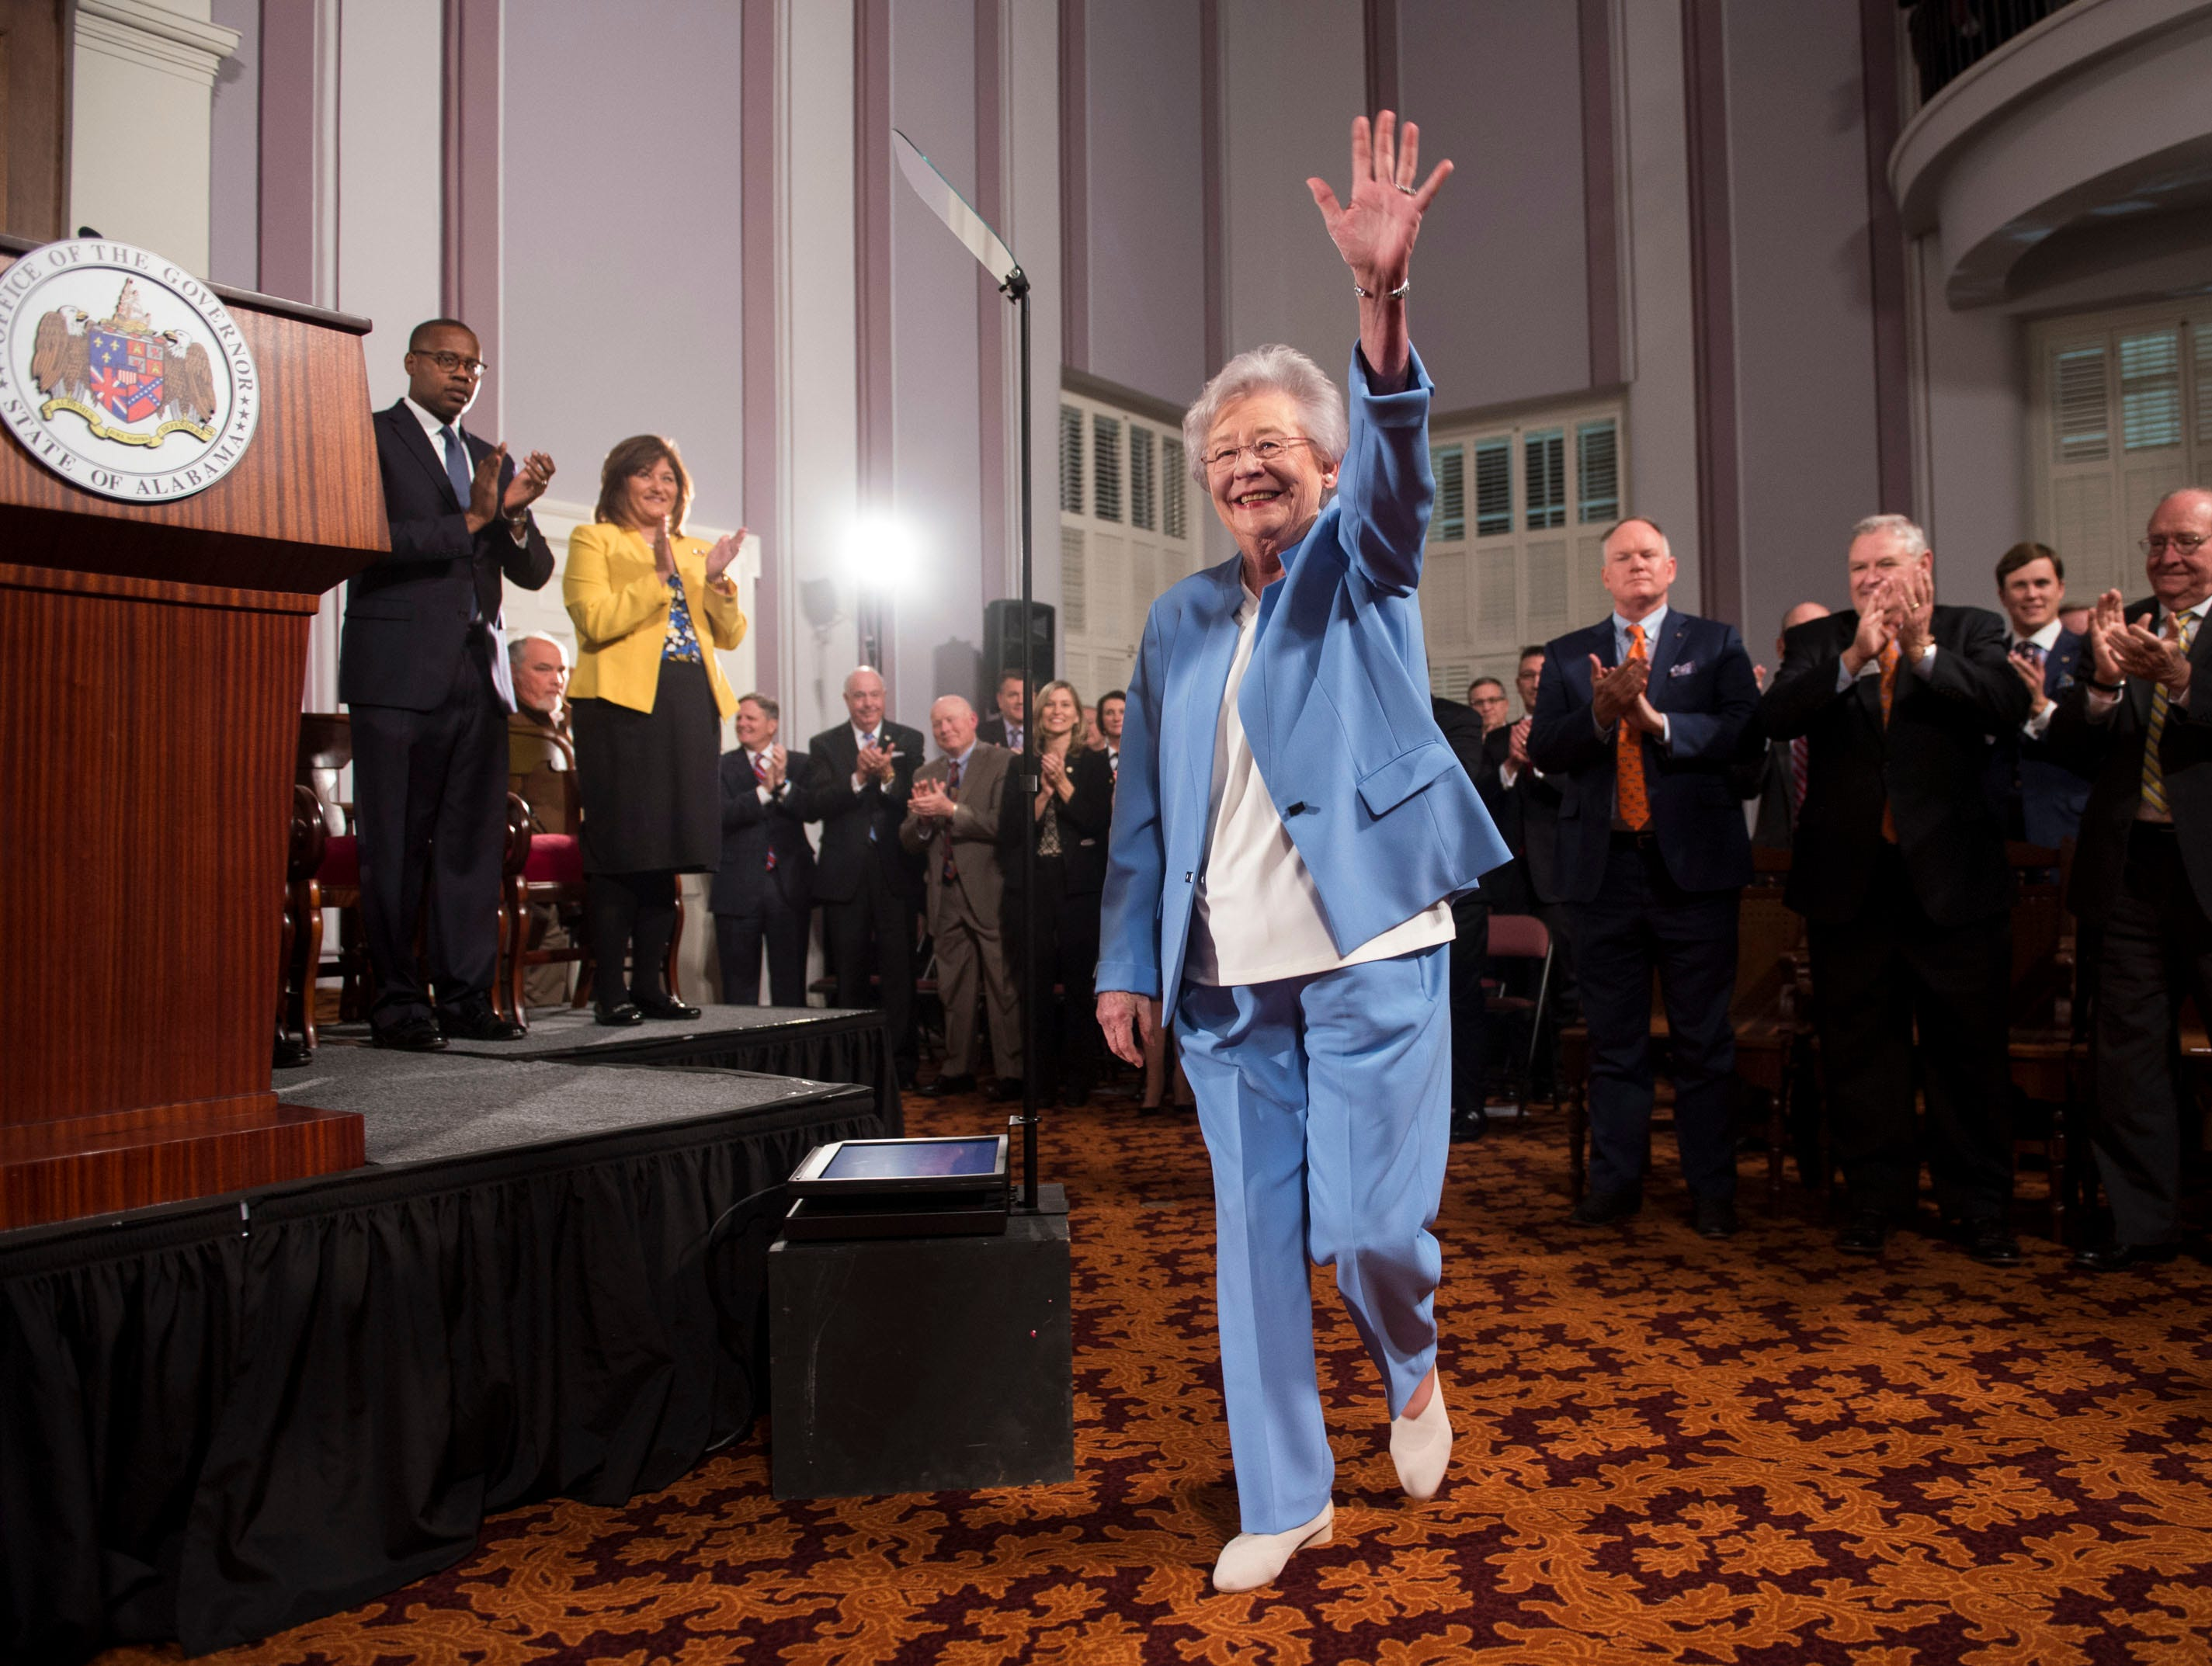 Gov. Kay Ivey enters the room before she delivers the State of the State address inside the old house chambers at the Alabama State Capitol in Montgomery, Ala., on Tuesday, March 5, 2019.